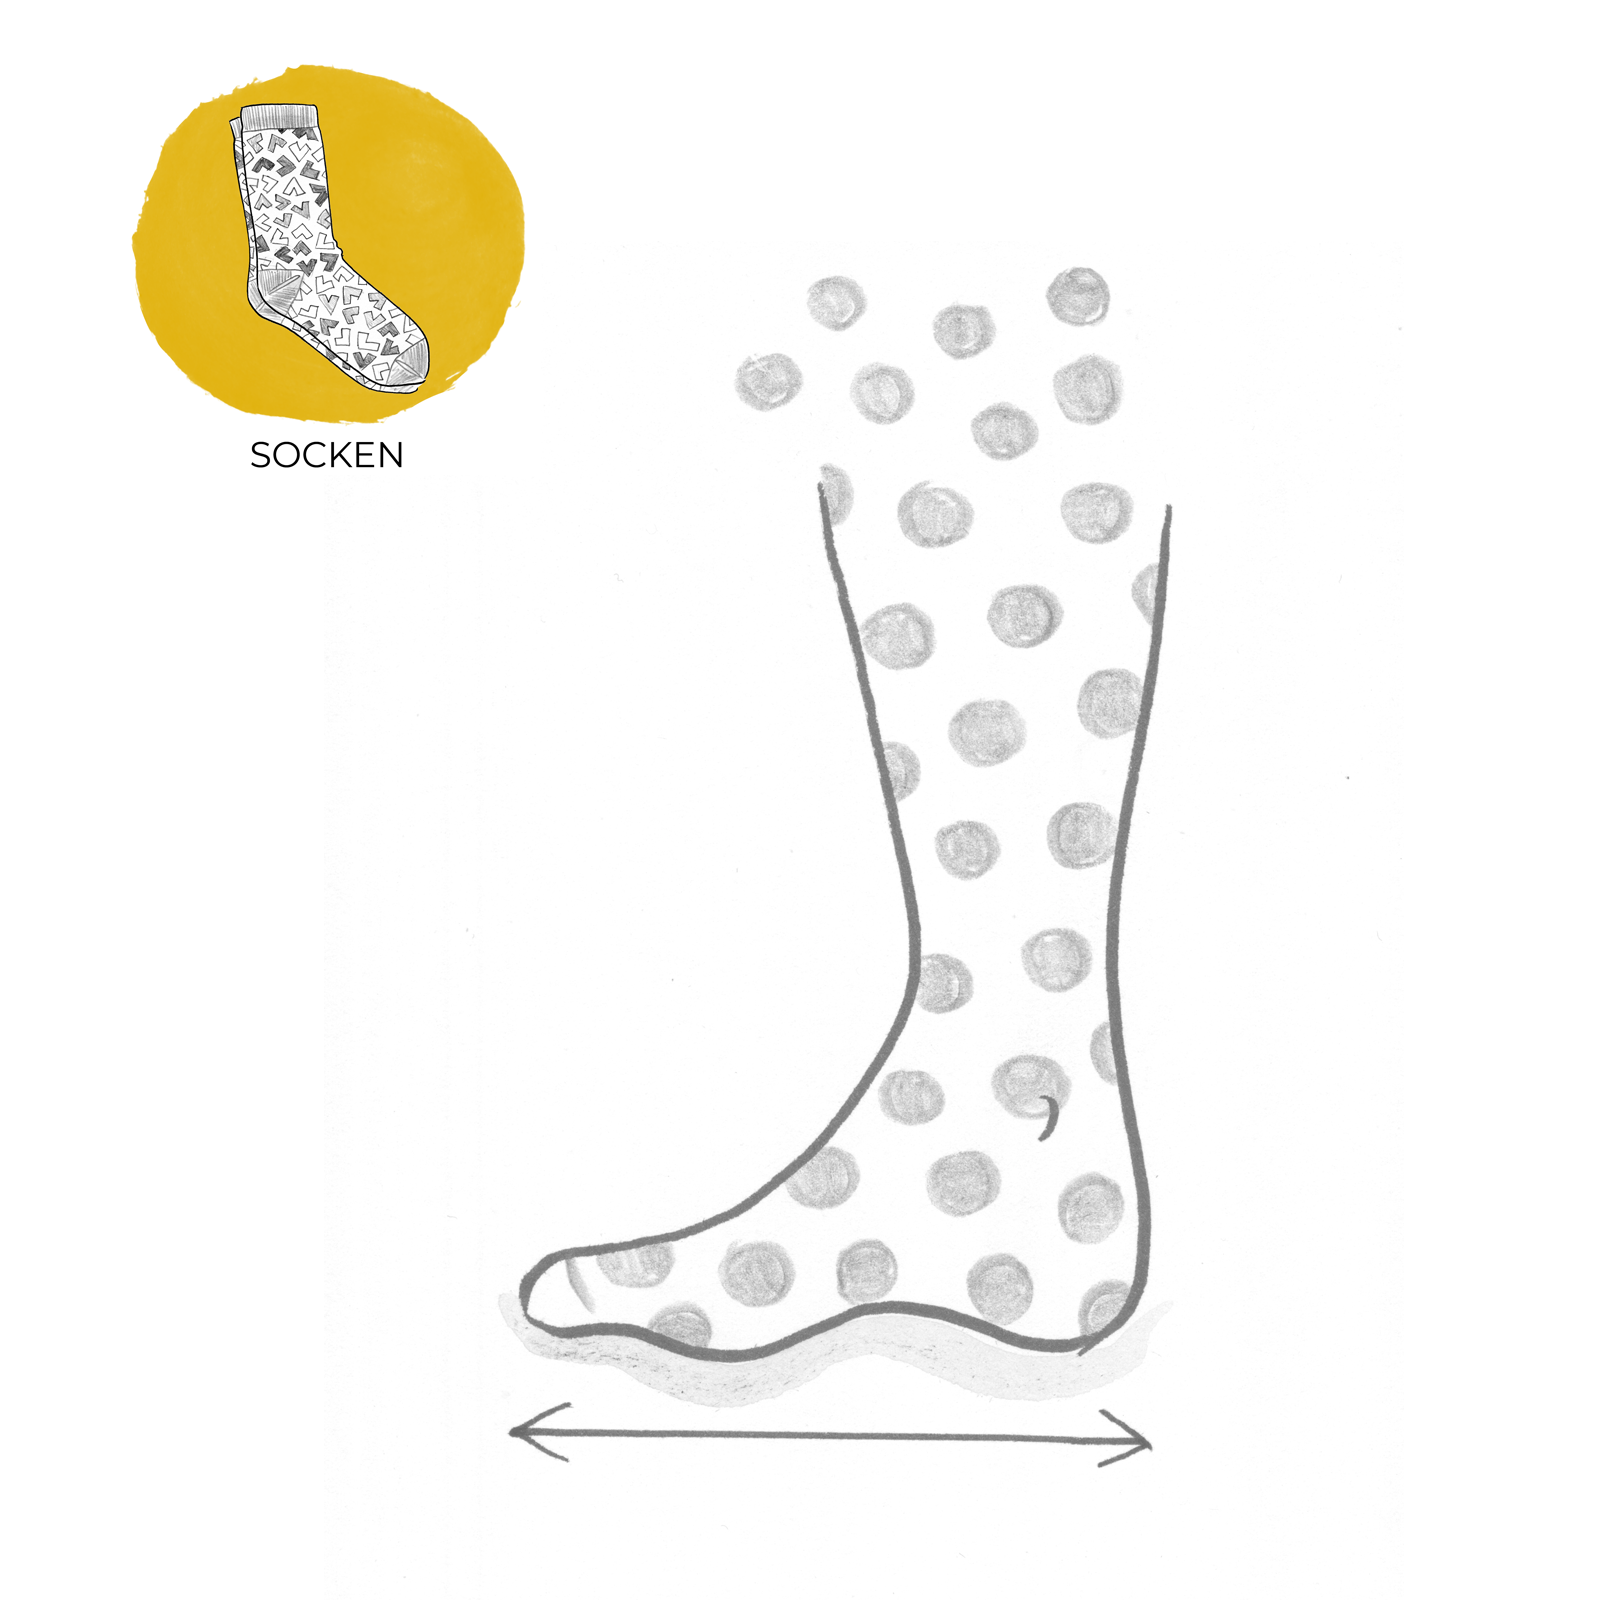 measurment guide_icon_illustration_SOCKS_X2_GE.png